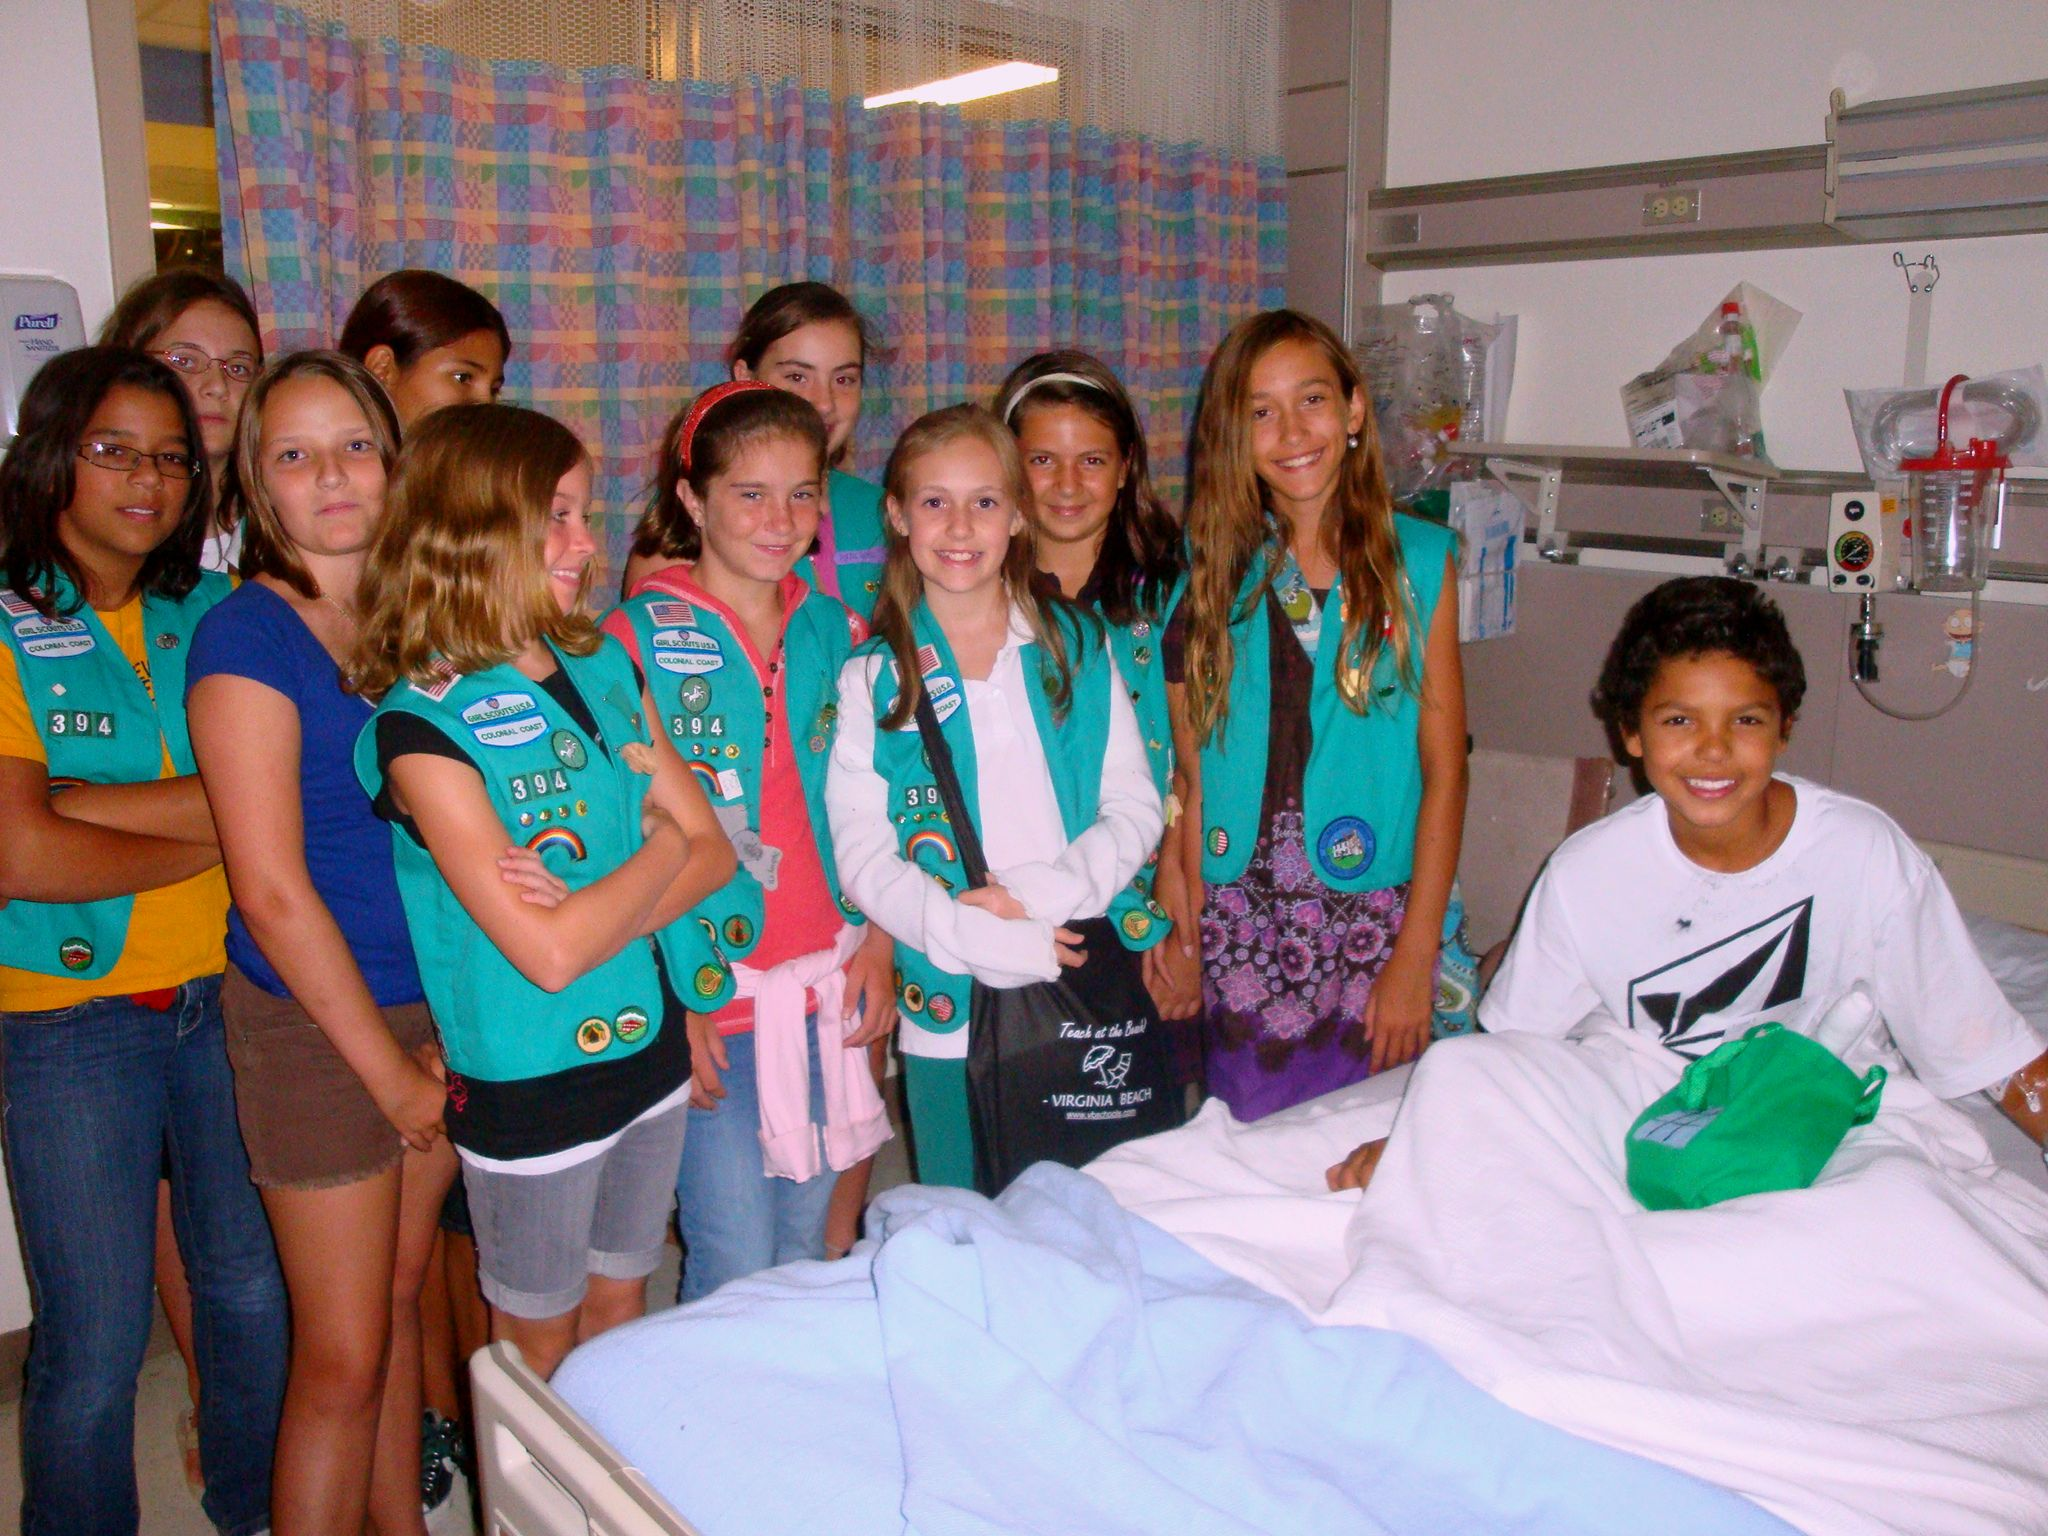 (Troop 394 – Donavan)  Girl Scout Junior Troop 394 from Virginia Beach personally delivered a few of the 46 Comfort and Care bags they put together for children at the Portsmouth Naval Hospital.  During their tour of the pediatric ward, the girls visited several patients, including Donavan, and were able to see first hand the impact their gifts will make on children in the hospital.  